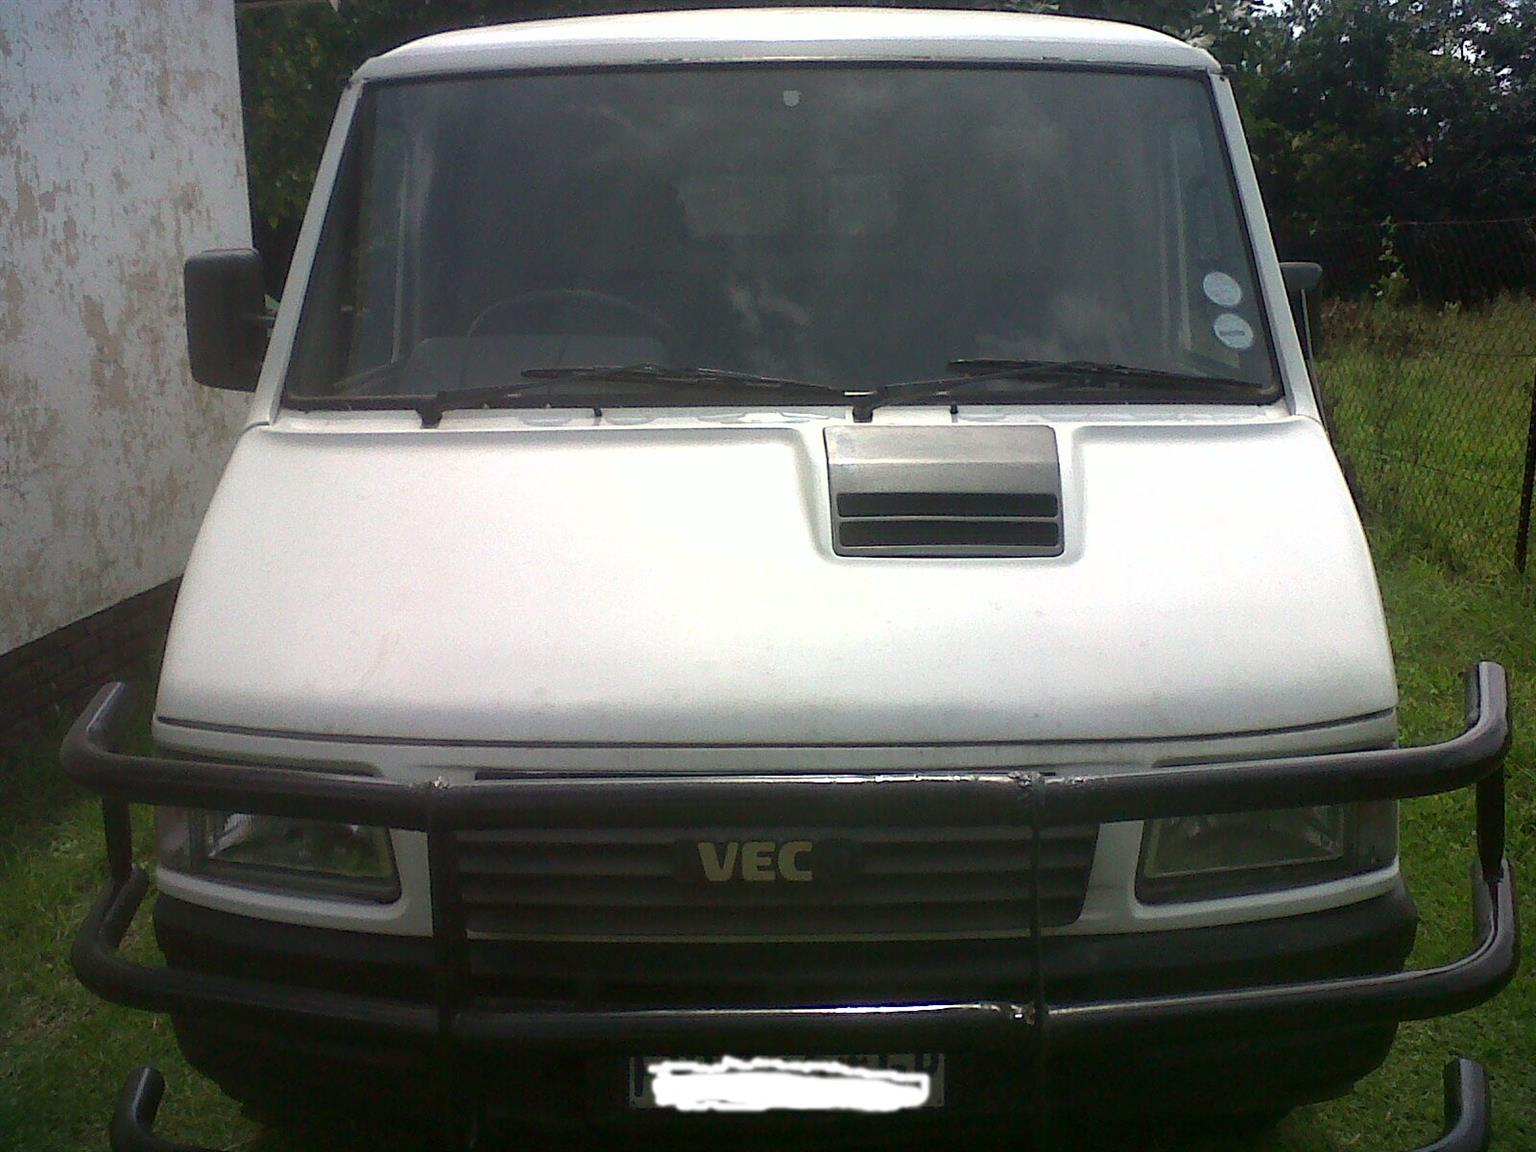 Iveco turbo Daily 1998 model Panelvan 5 speed LWB.For sale or trade ...